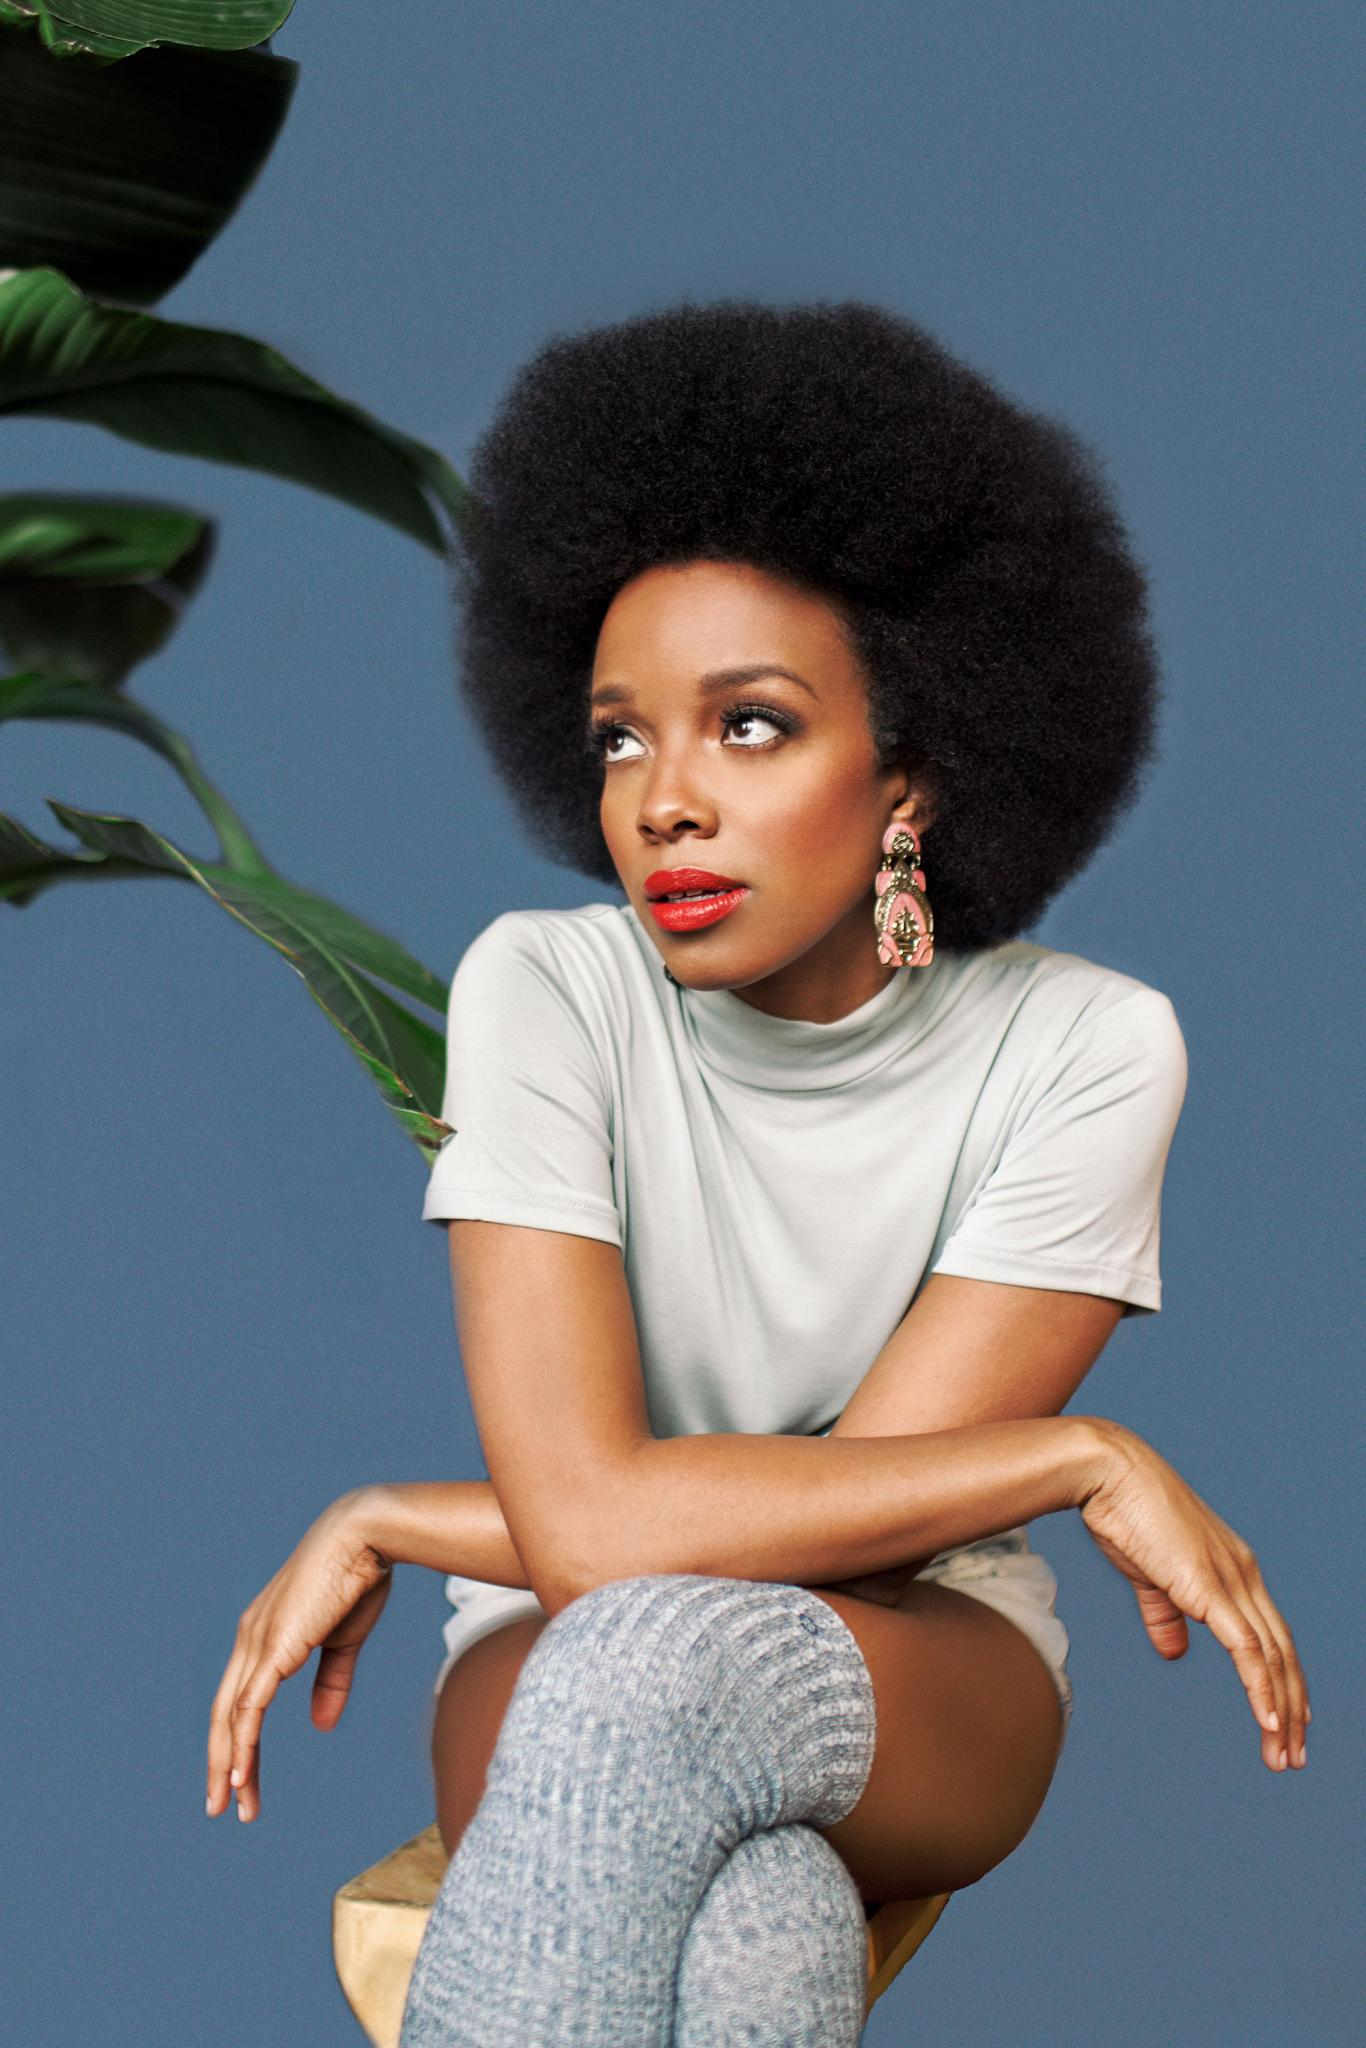 New & Next: Introducing Jamila Woods, a 'Blk Girl Soldier' Full of Magic